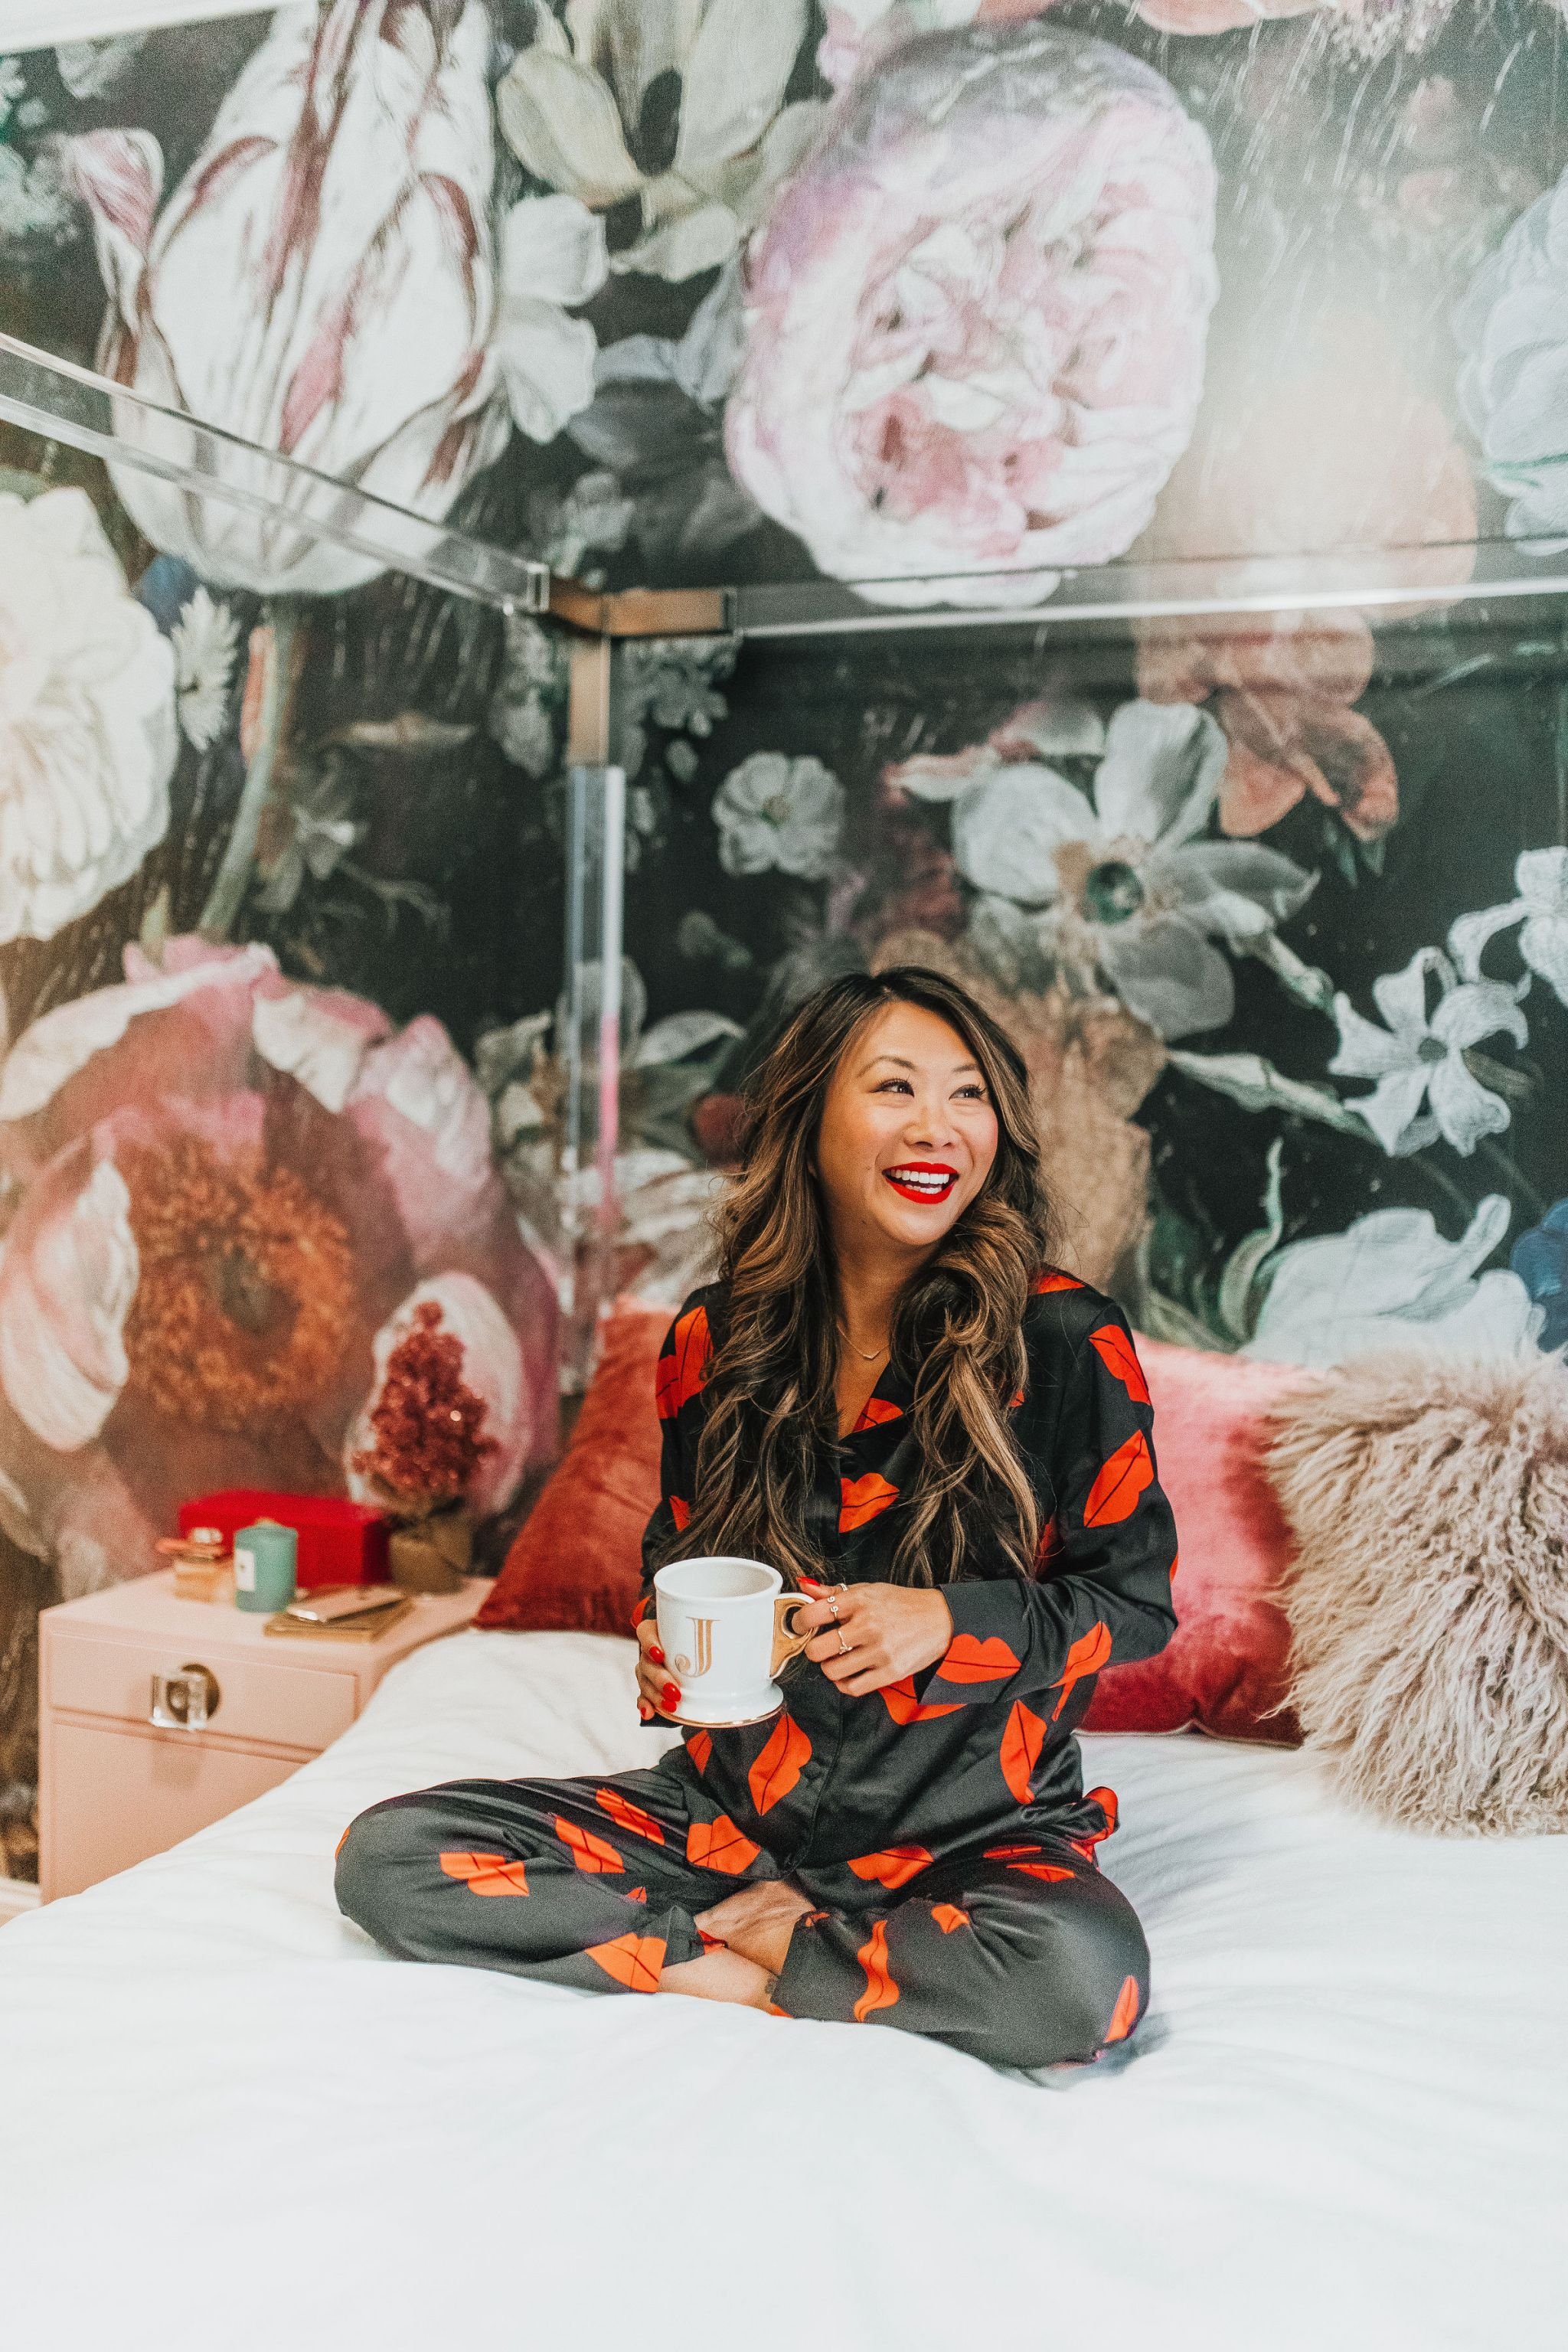 Jennifer Worman, Chicago Lifestyle Blogger, Home Tour, Bedroom Decor, Best Pajamas, Lucite Bed, Lips Pajamas, Best Pajamas for a steal